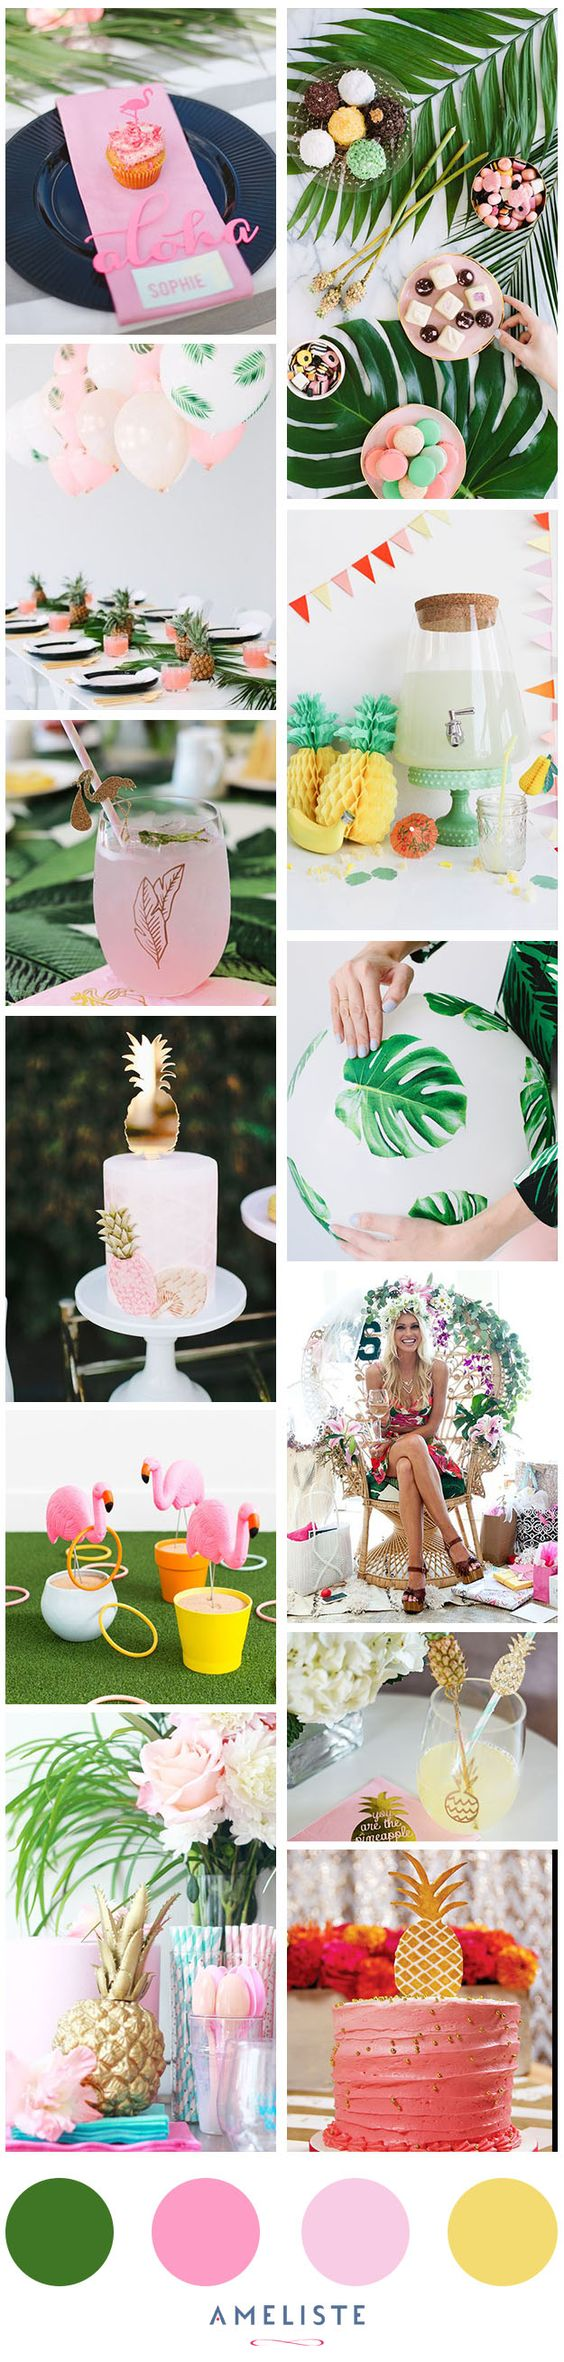 Mood Board Ameliste Tropical Party // Tropical Baby Shower //